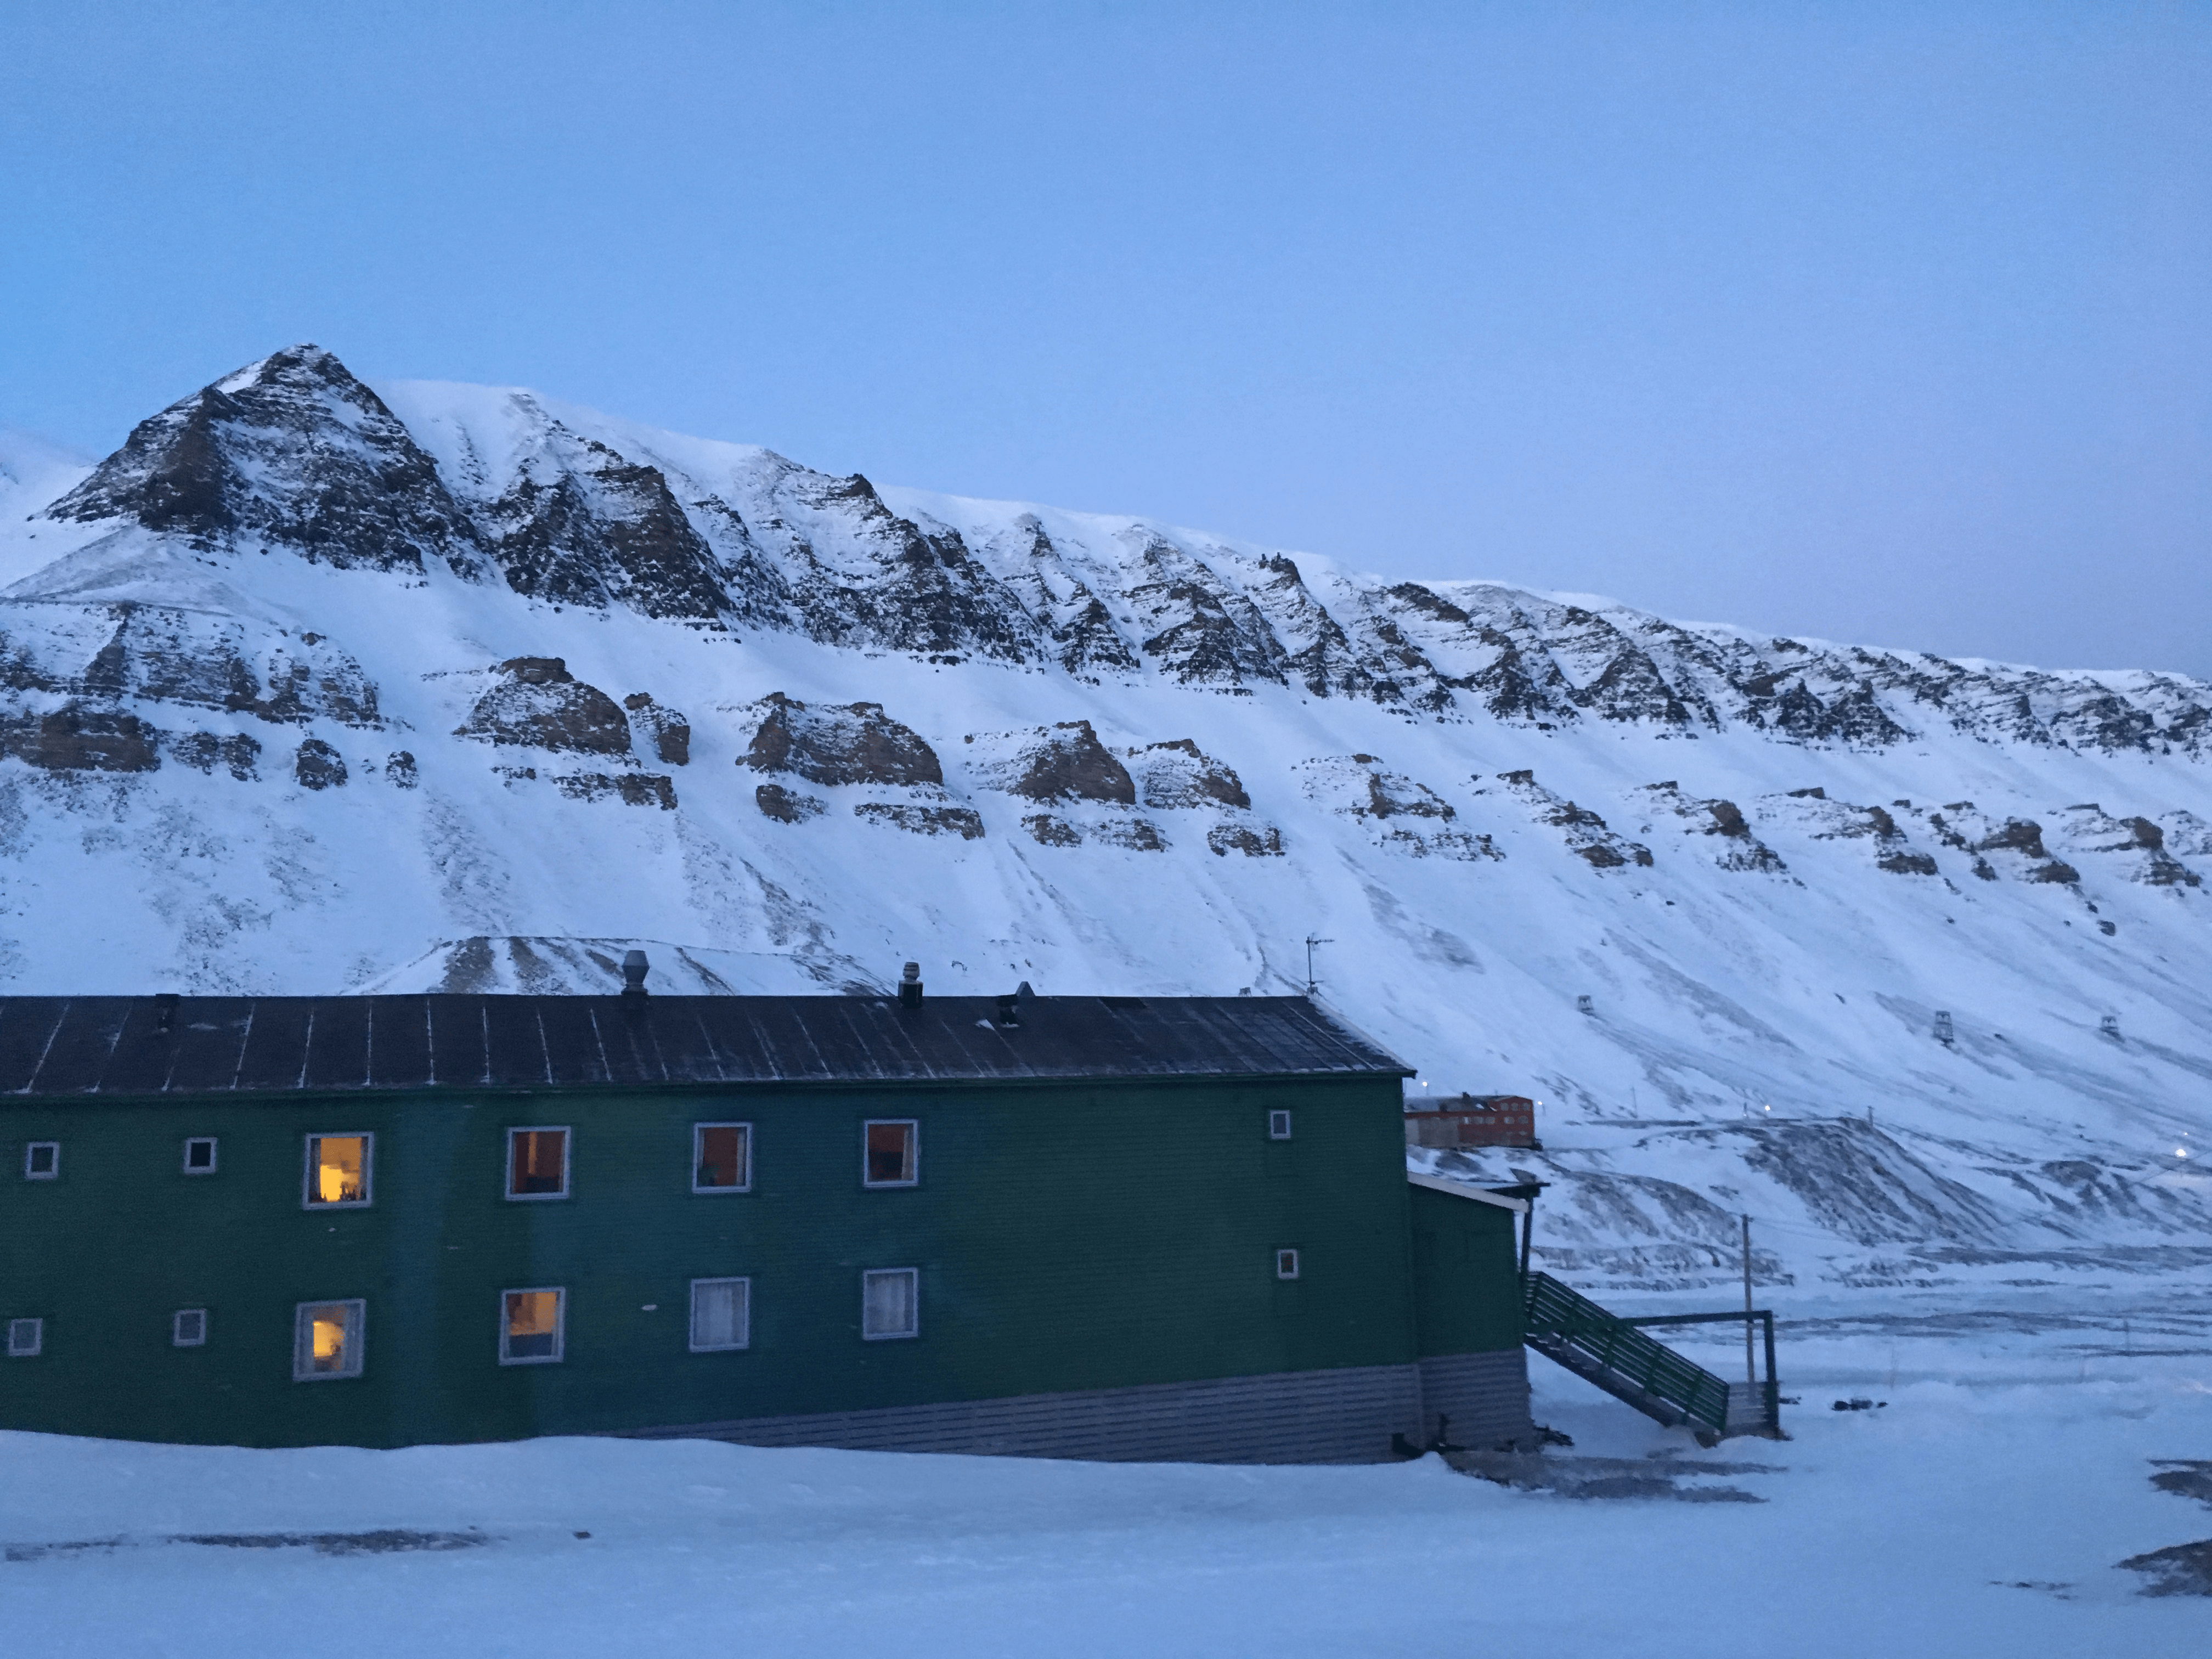 Green building with lights in windows, snowy mountain in background